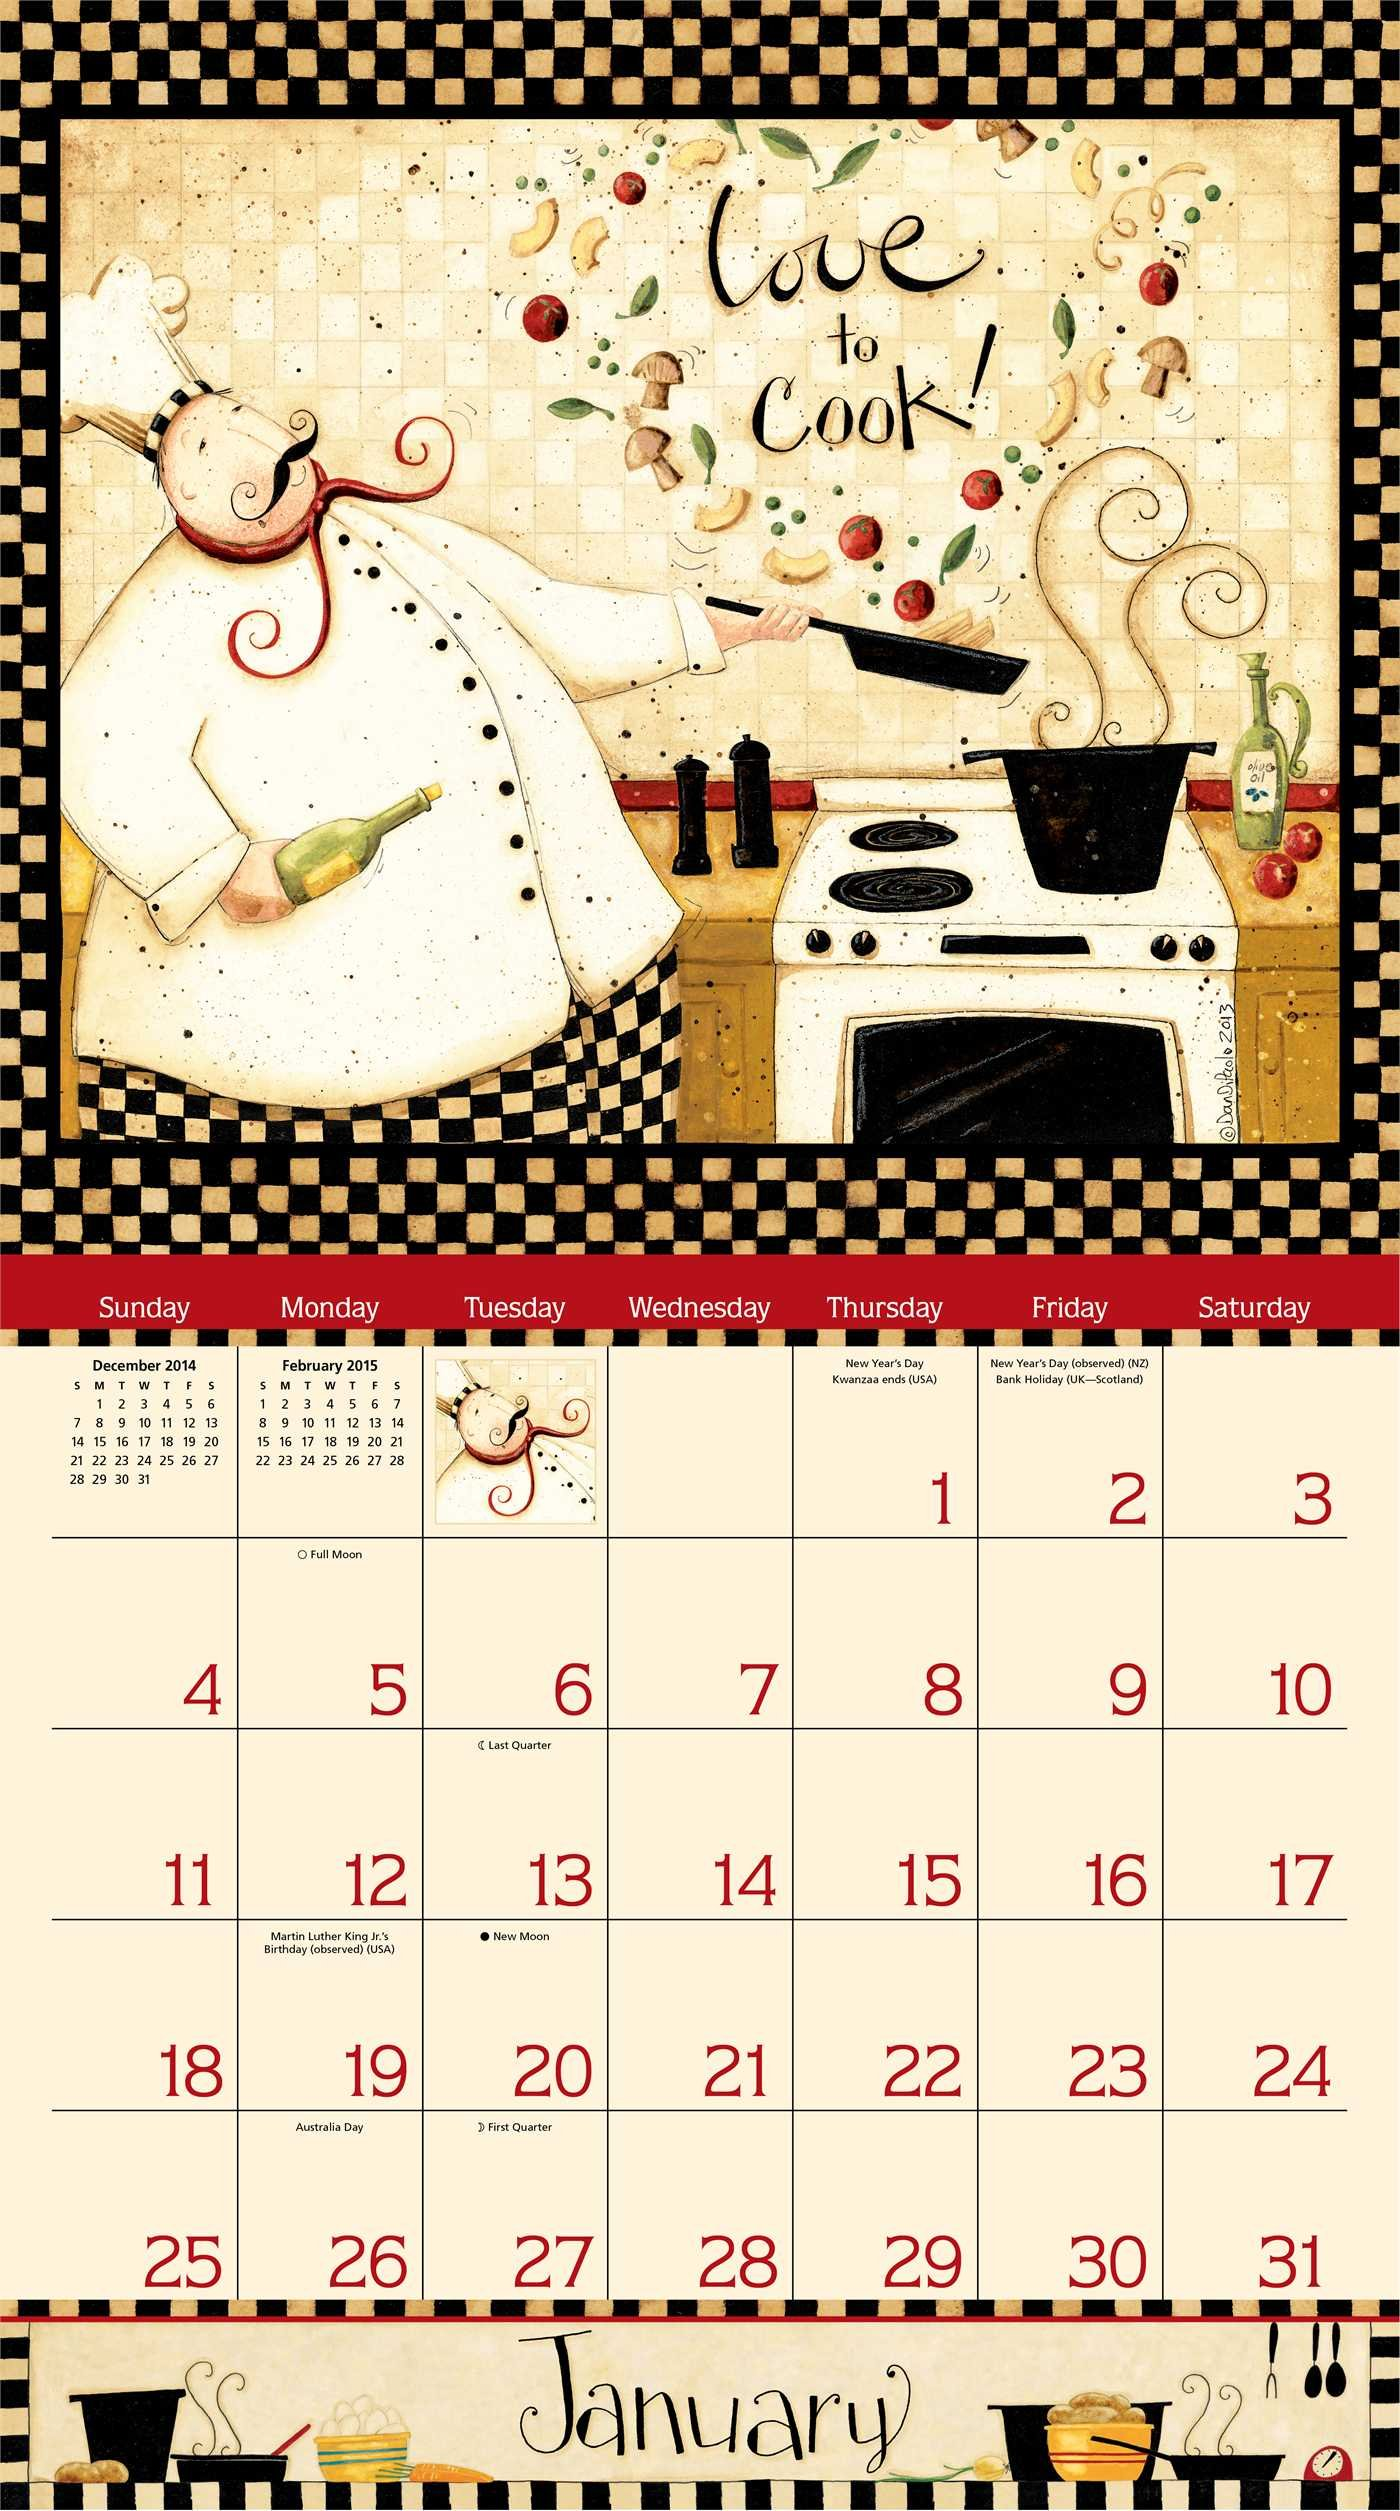 Home Is In The Kitchen Calendar Amazon Co Uk Dan Dipaolo Books